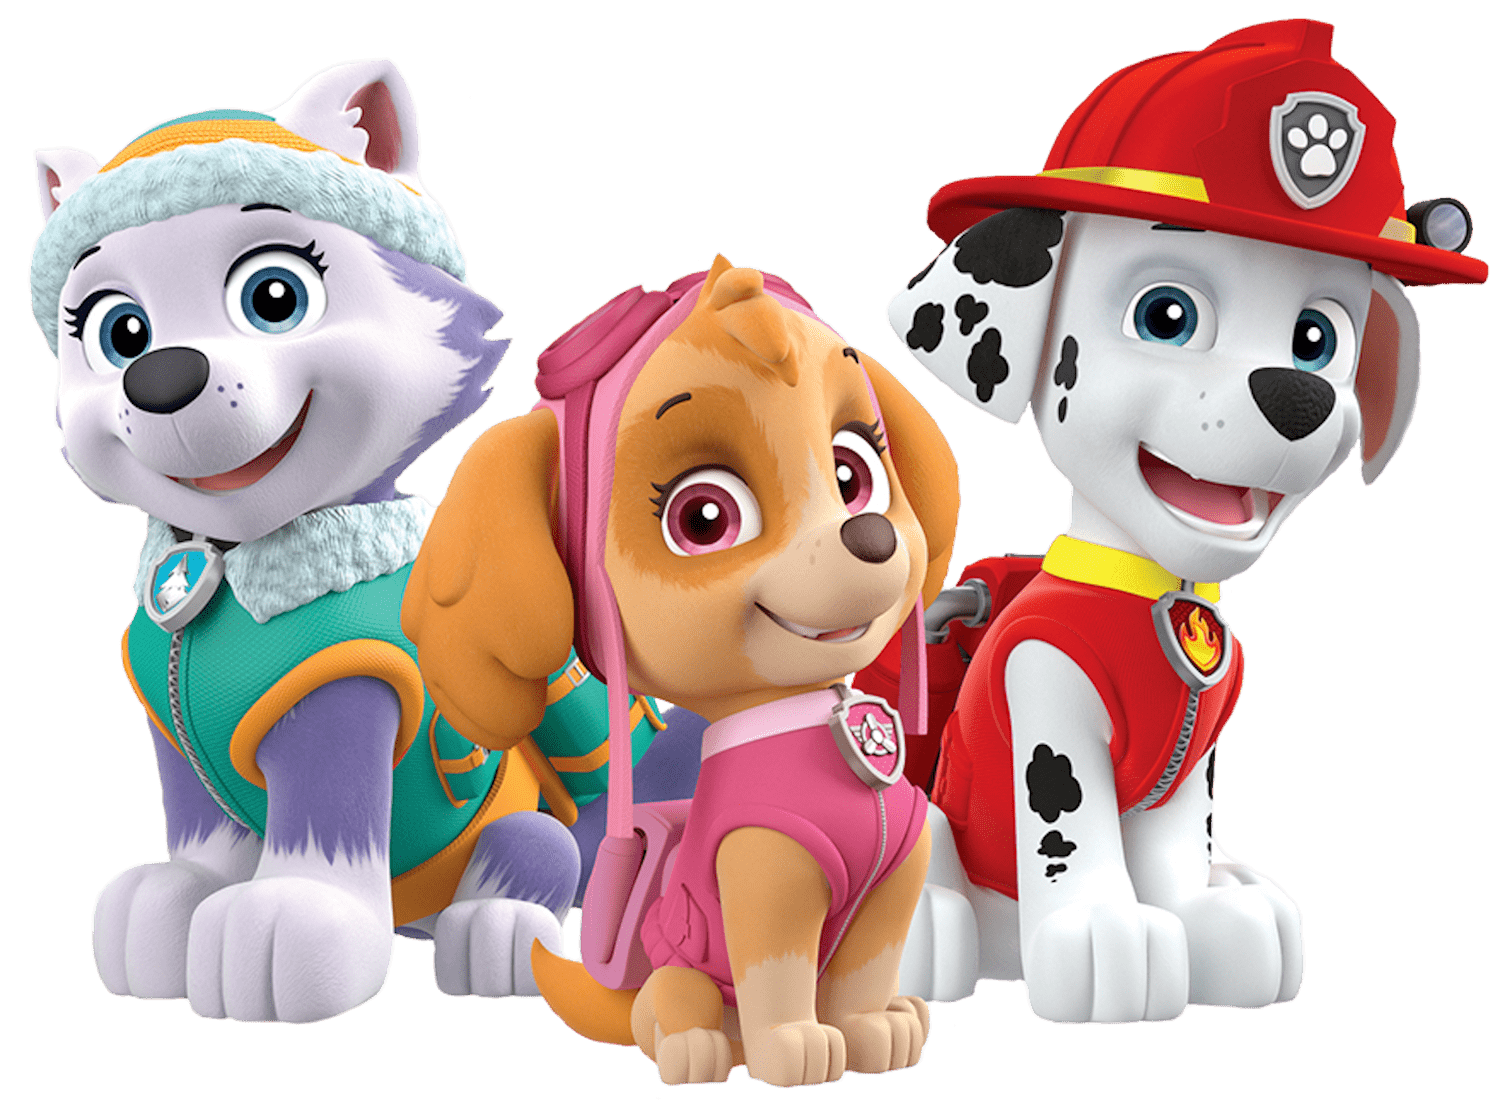 Paw Patrol Wallpapers High Quality Download Free